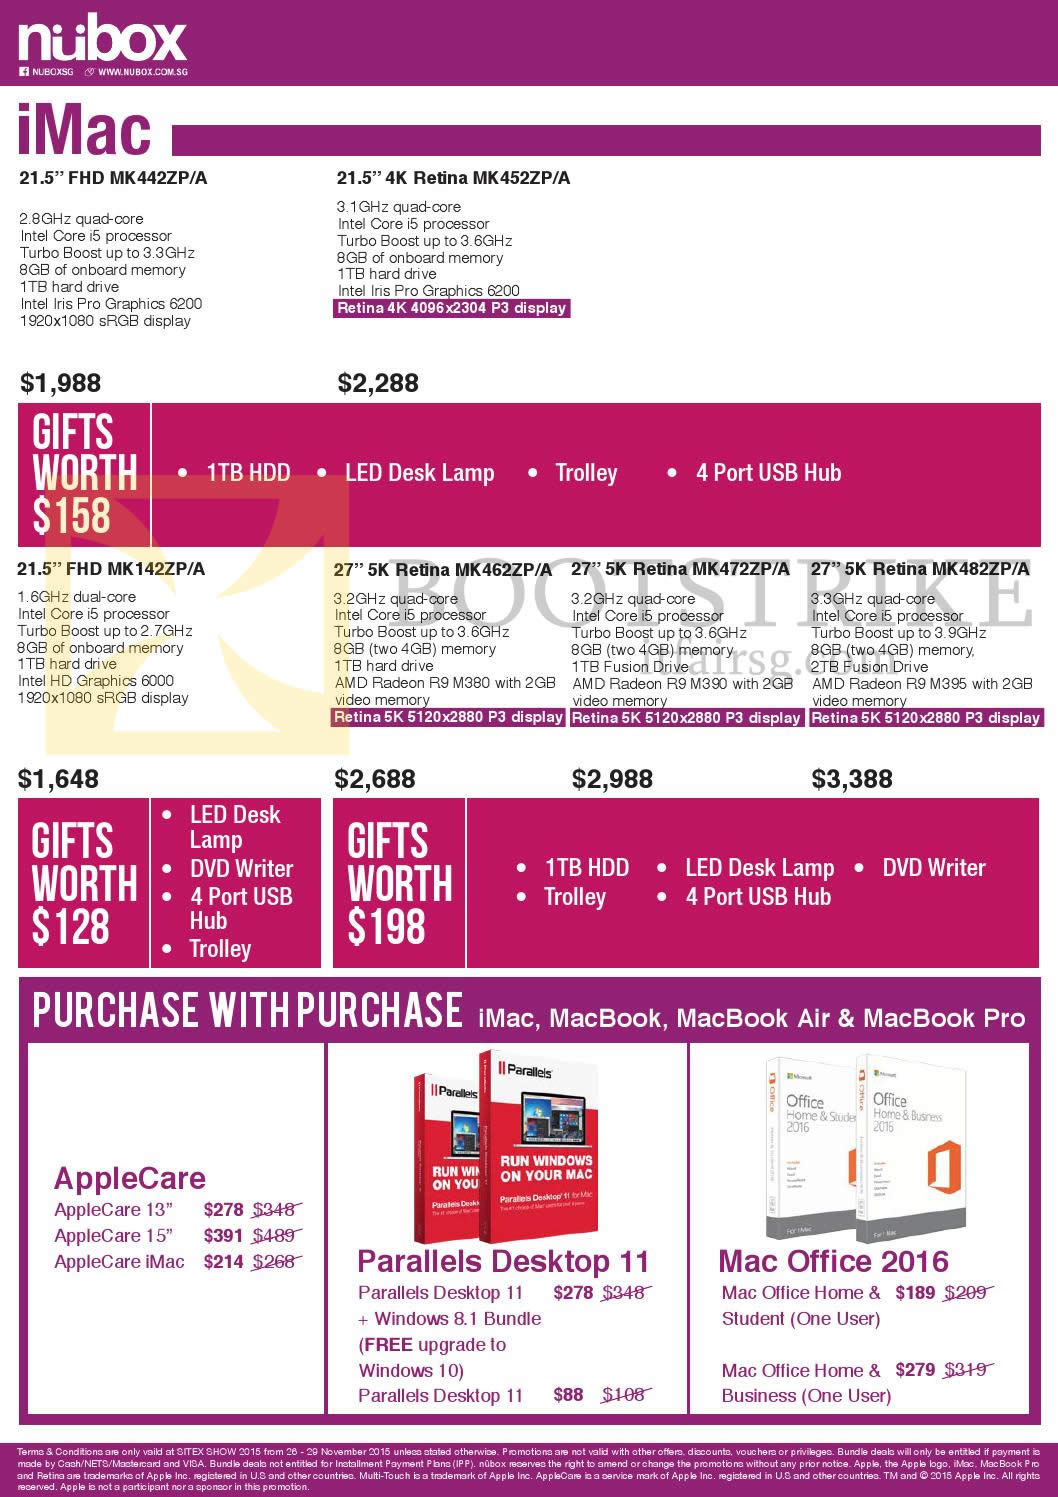 SITEX 2015 price list image brochure of Nubox Apple IMac, Purchase With Purchase Applecare, Parallels Desktop 11, Mac Office 2016